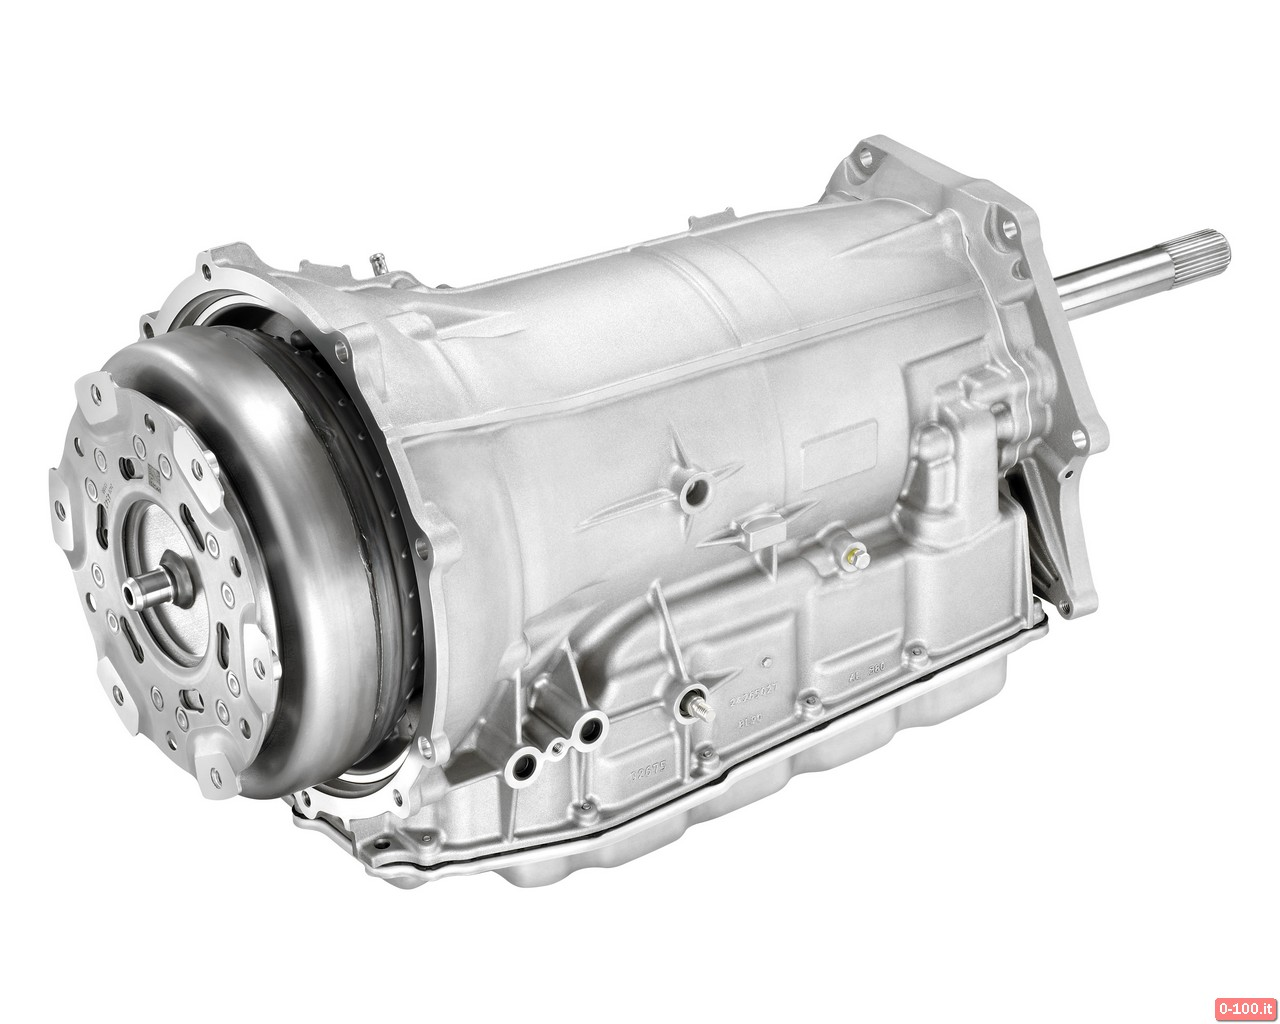 2015 Hydra-Matic 8L90 (M5U) Eight-Speed RWD Auto Transaxle for C